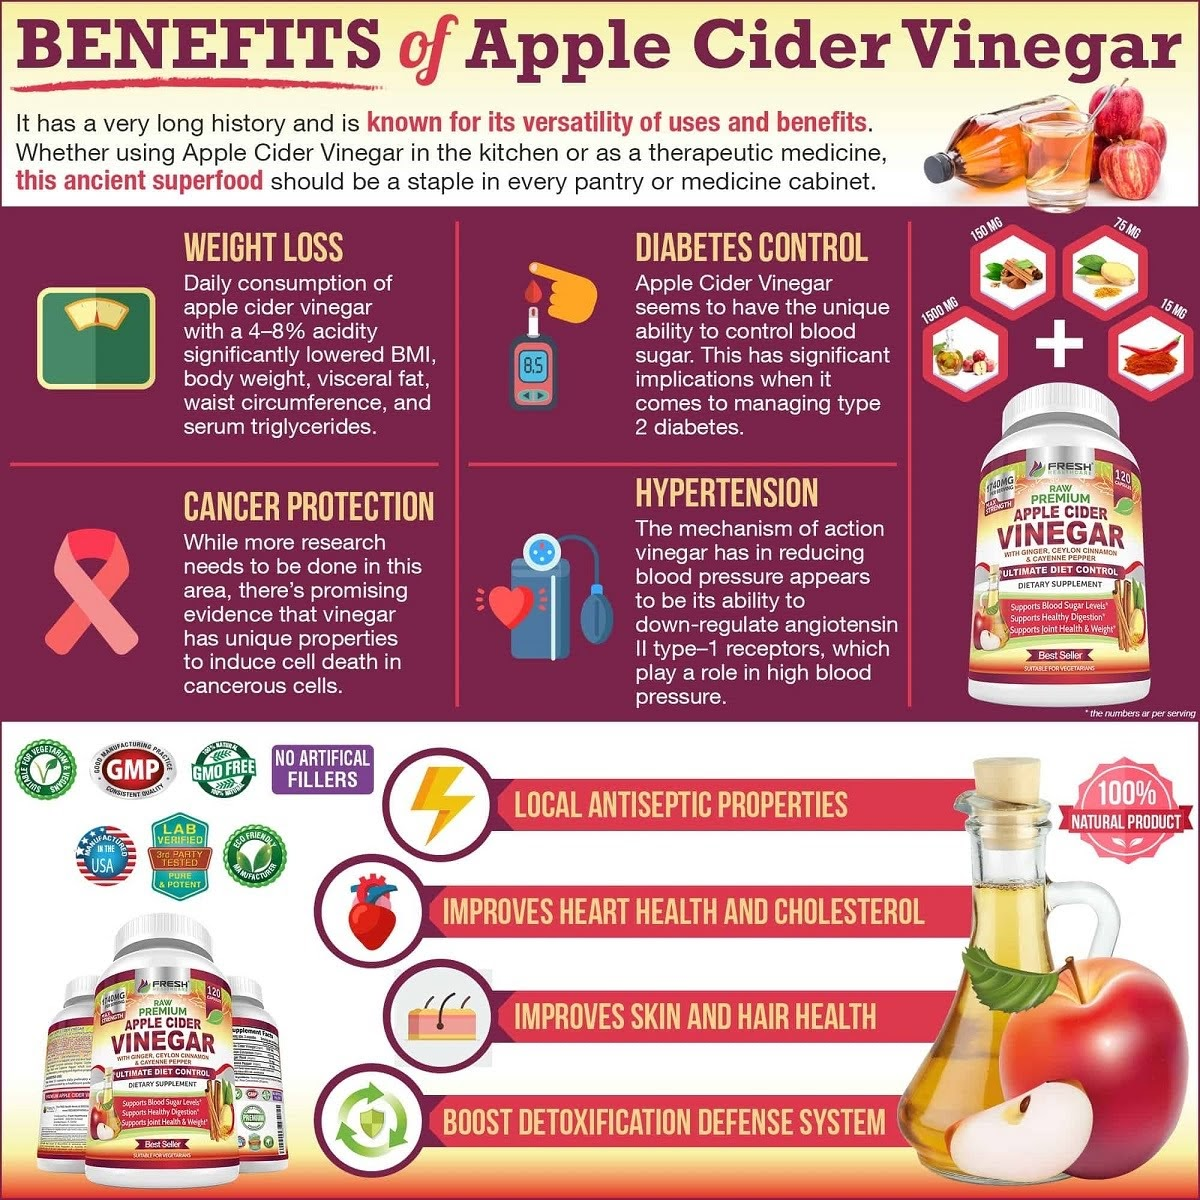 The Definitive Guide to the Benefits of Apple Cider Vinegar #infographic